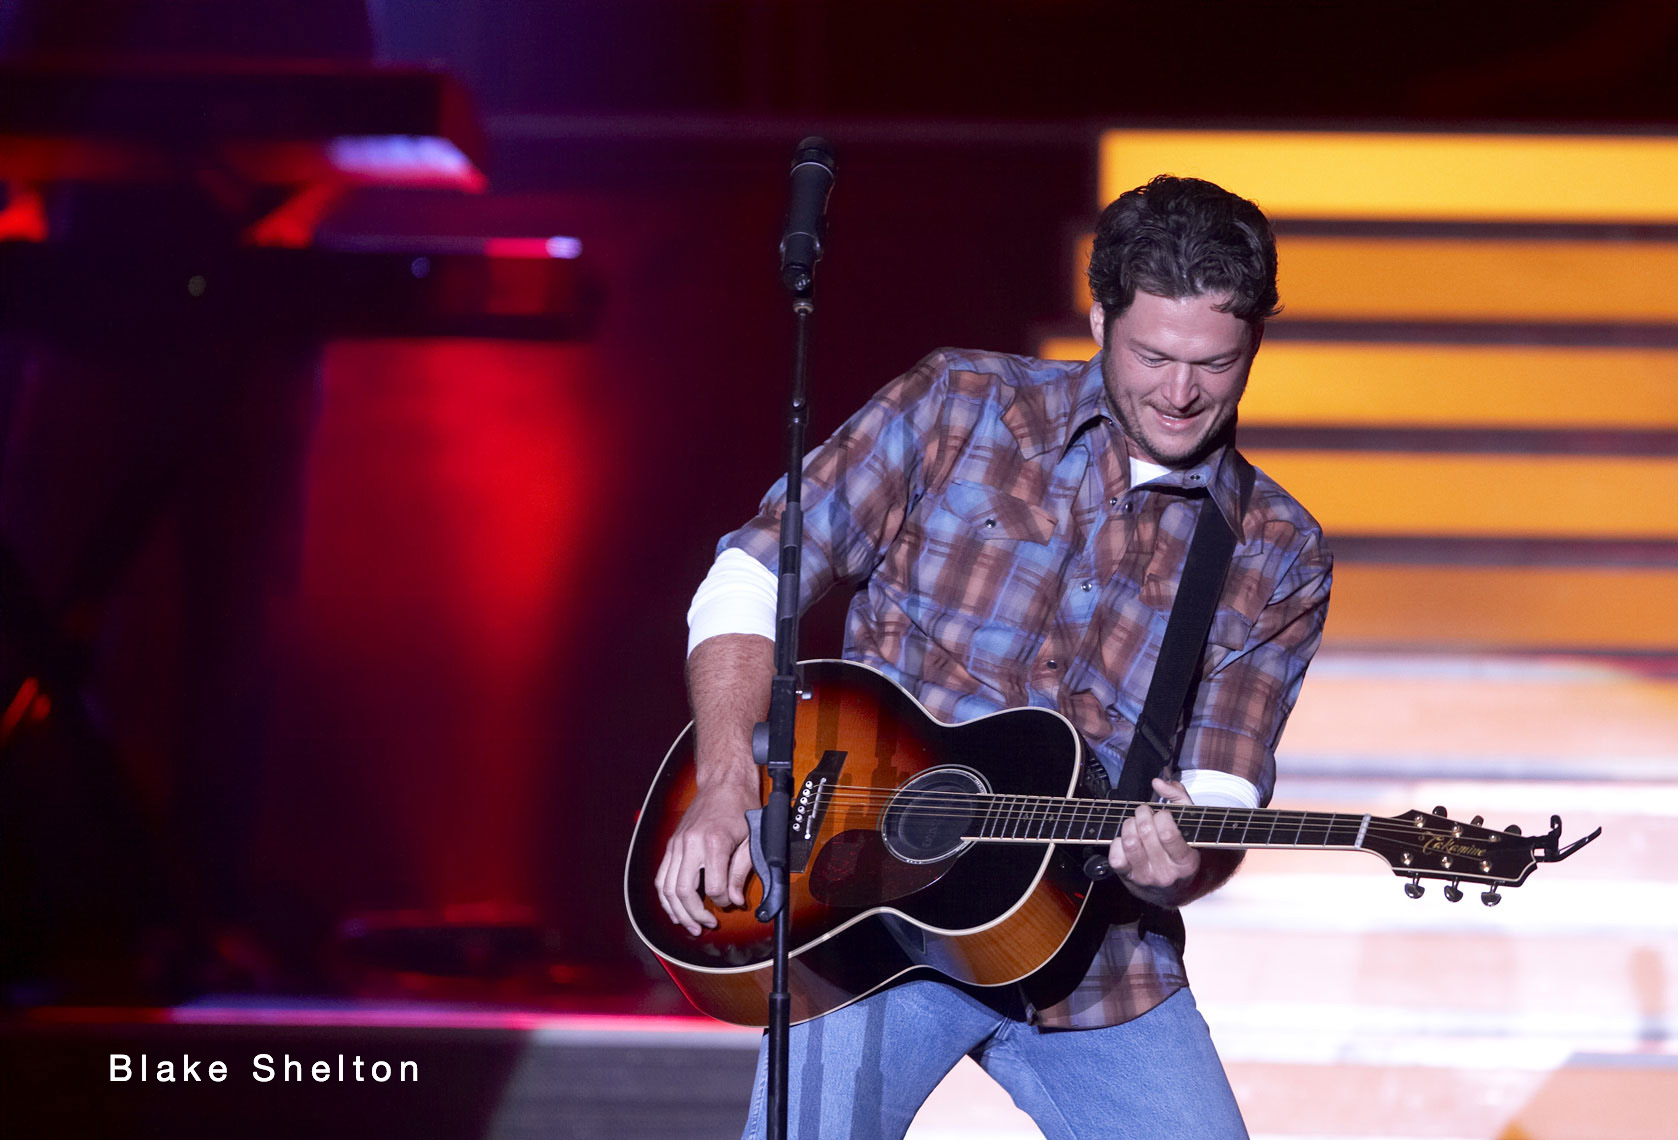 Blake Shelton/Mystic Lake Casino/concert photo